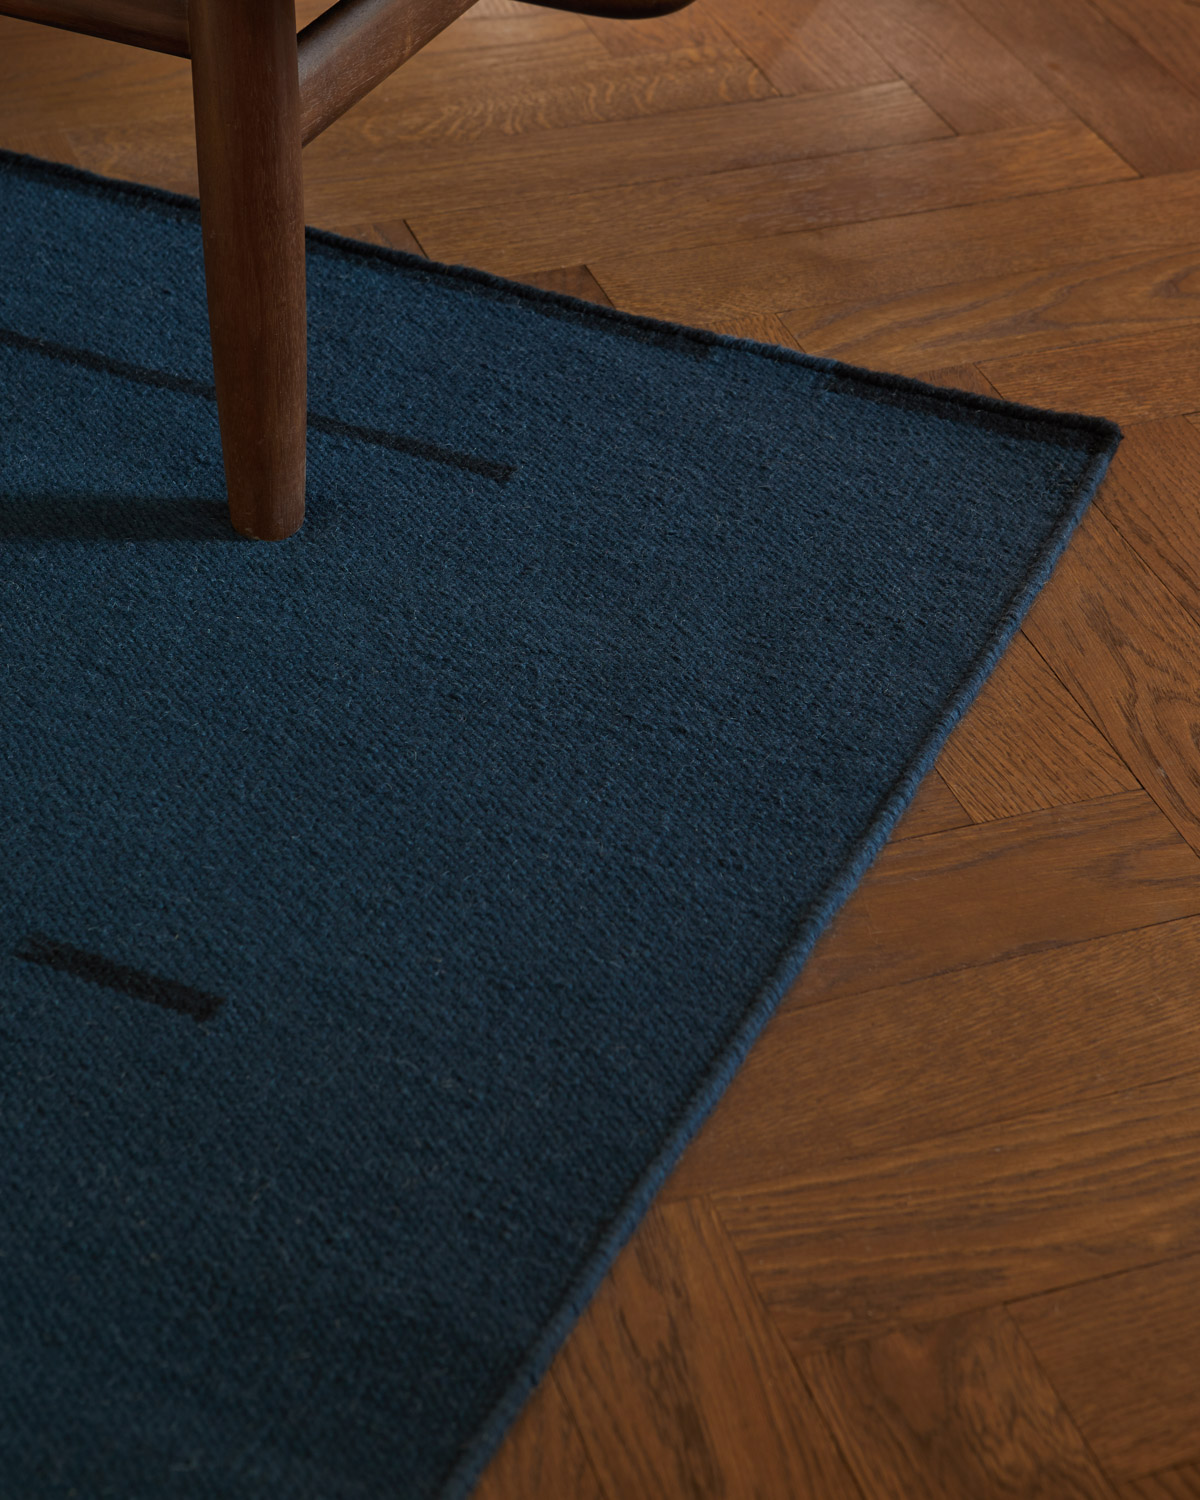 Close up of the Rain Teal flat-weave rug.